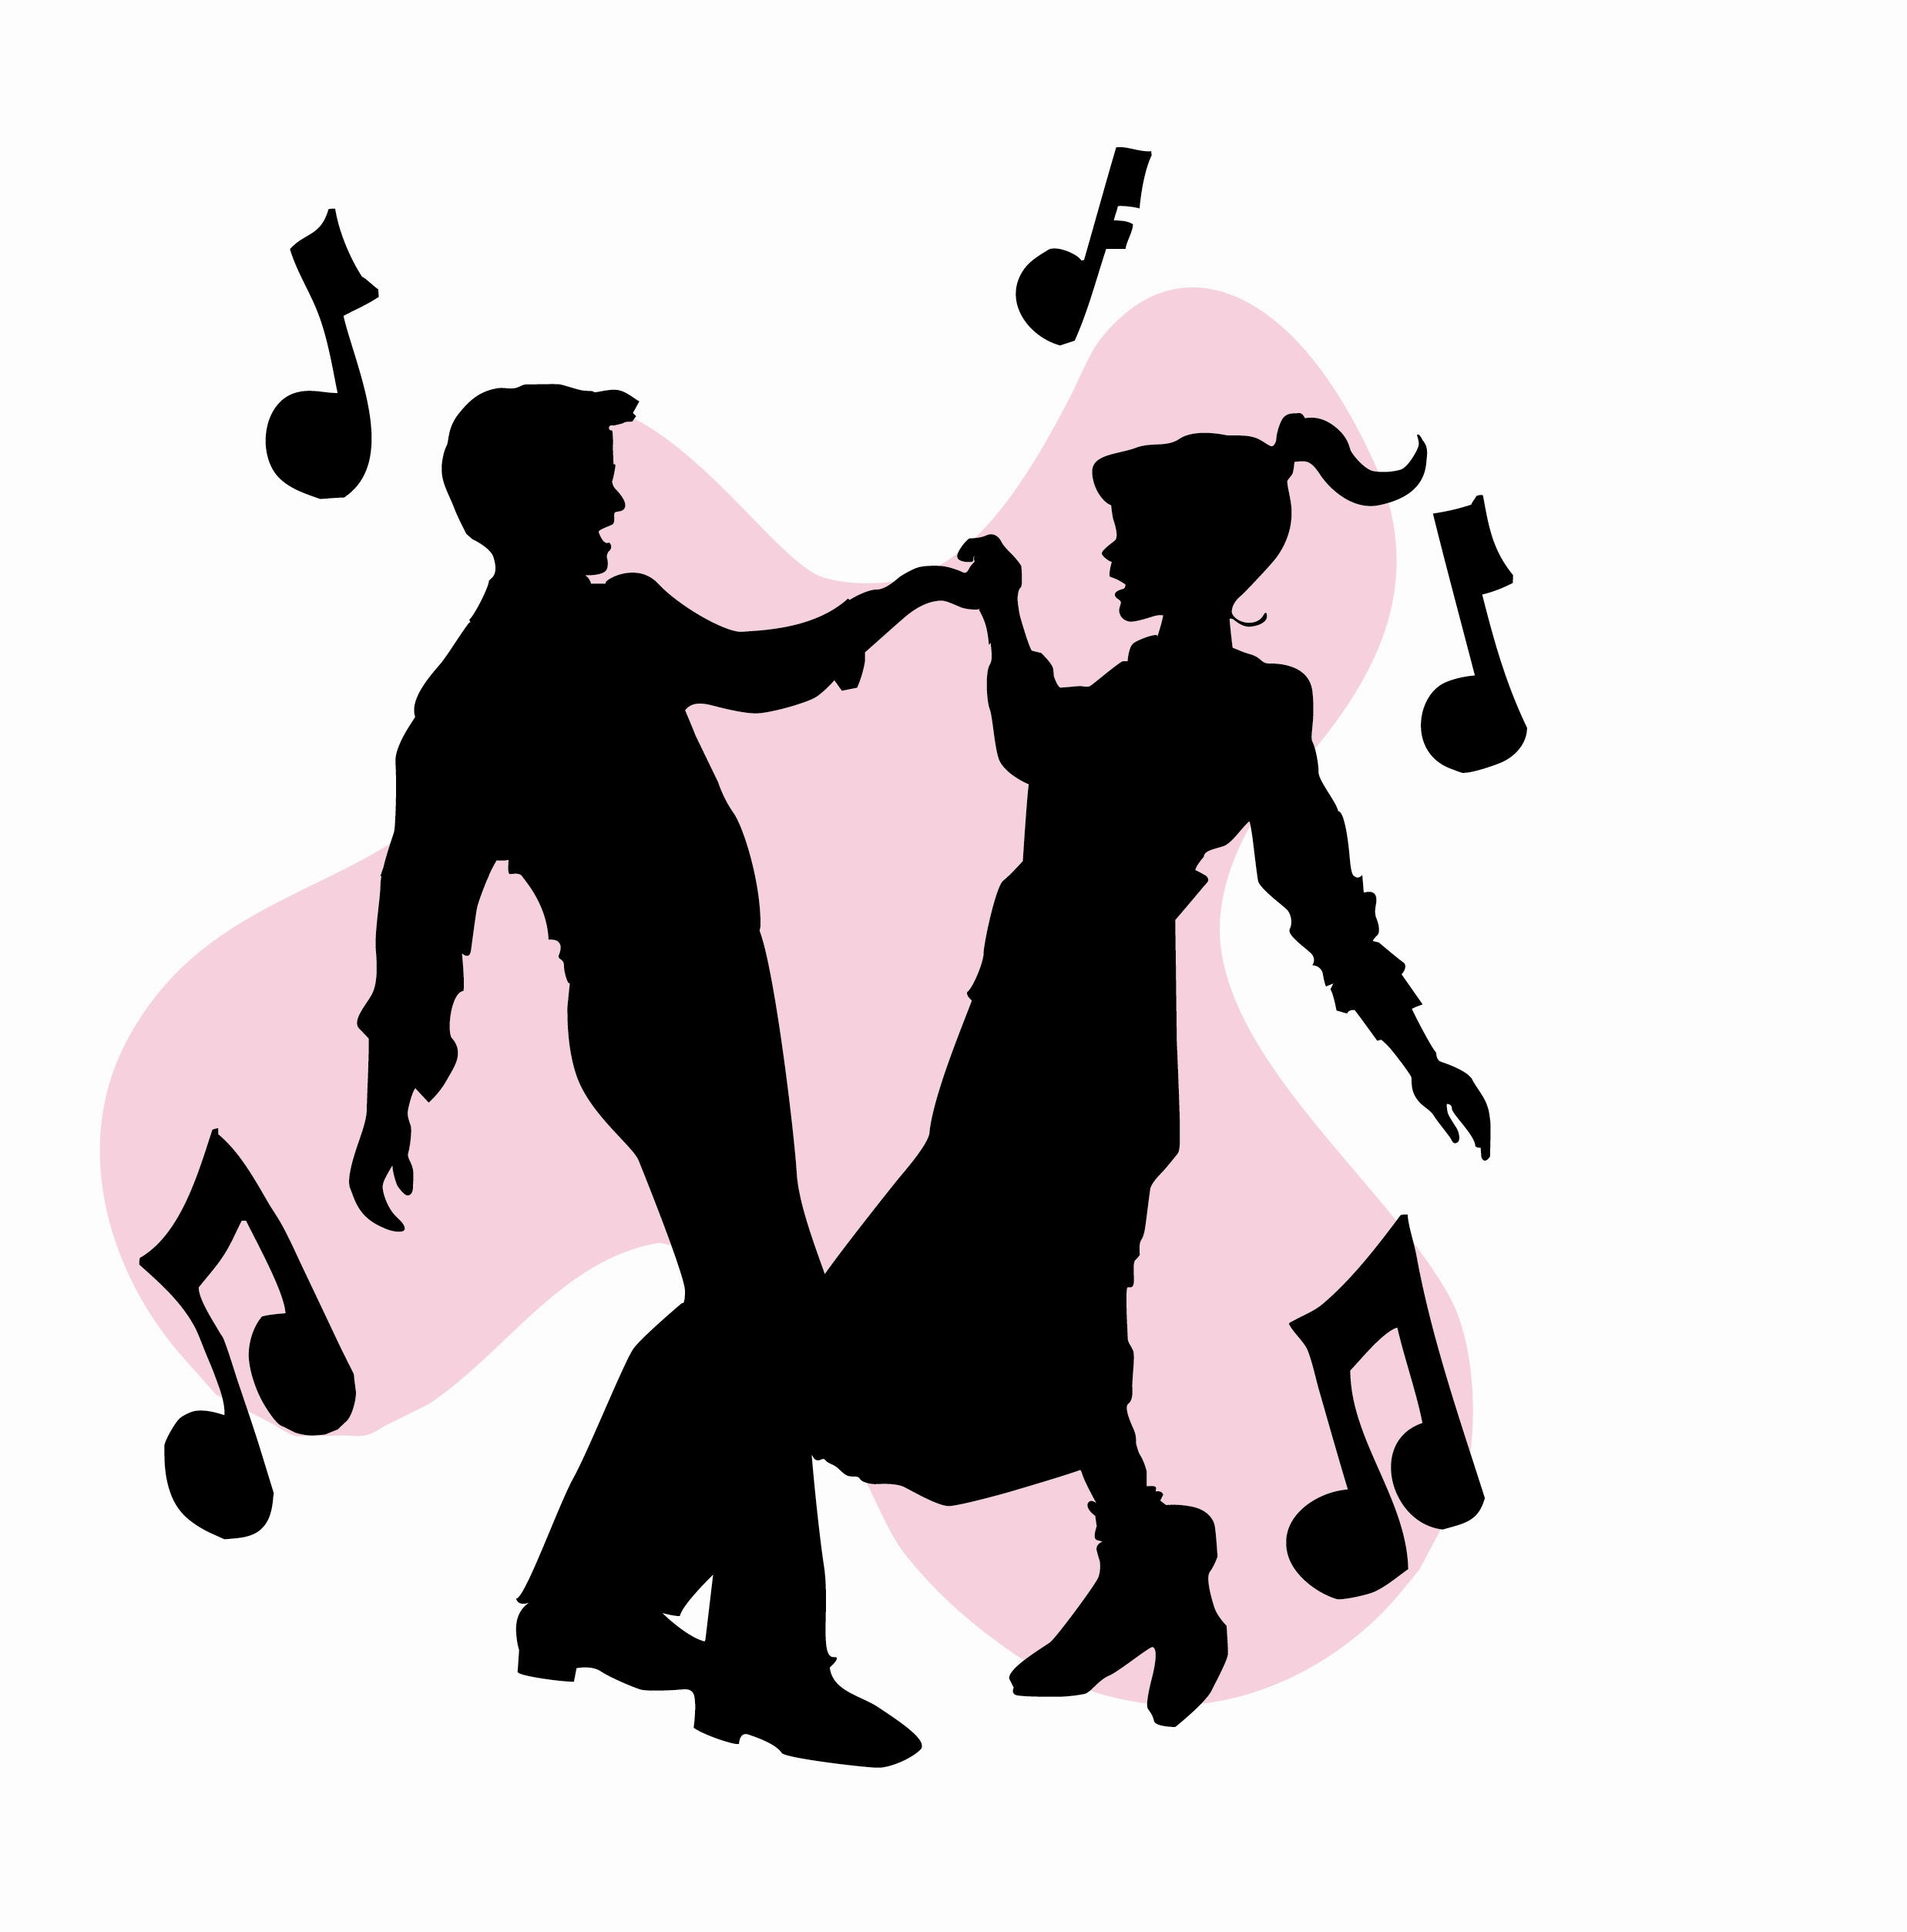 Dancer Silhouette Clipart at GetDrawings.com | Free for personal use ...